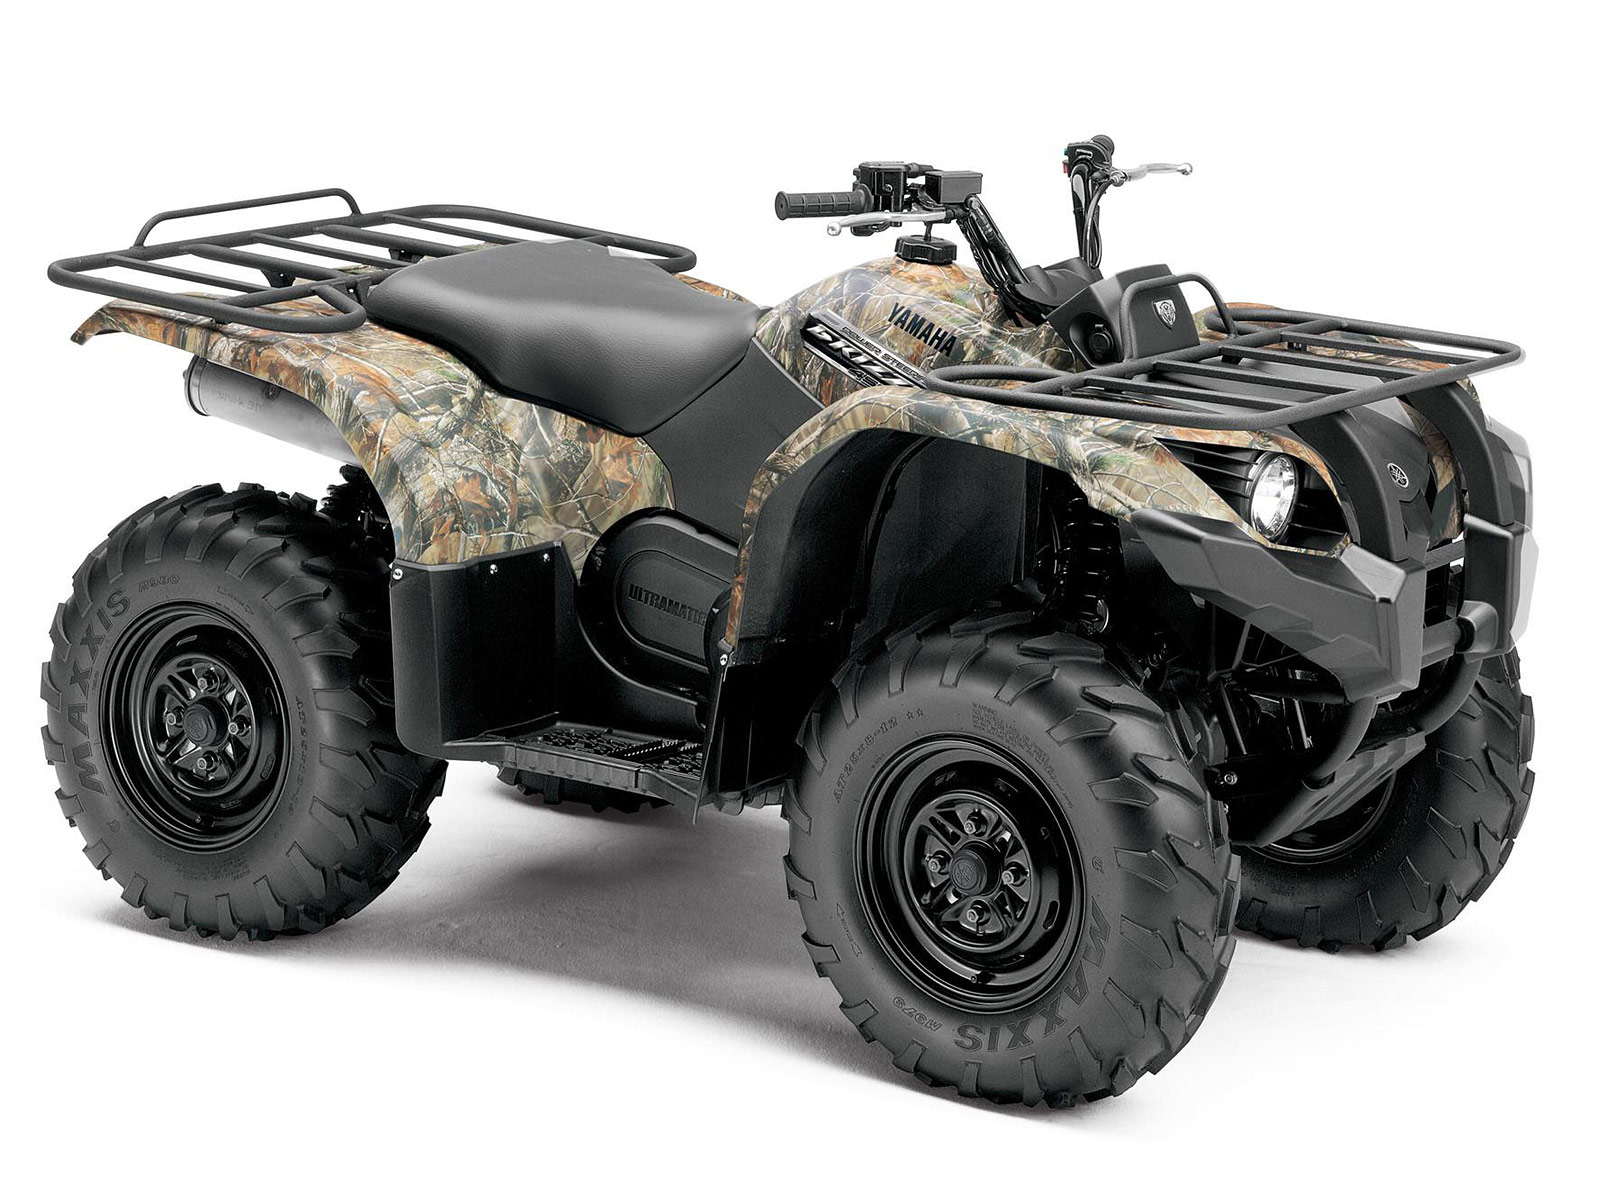 2013 grizzly 450 auto 4x4 eps yamaha atv pictures. Black Bedroom Furniture Sets. Home Design Ideas